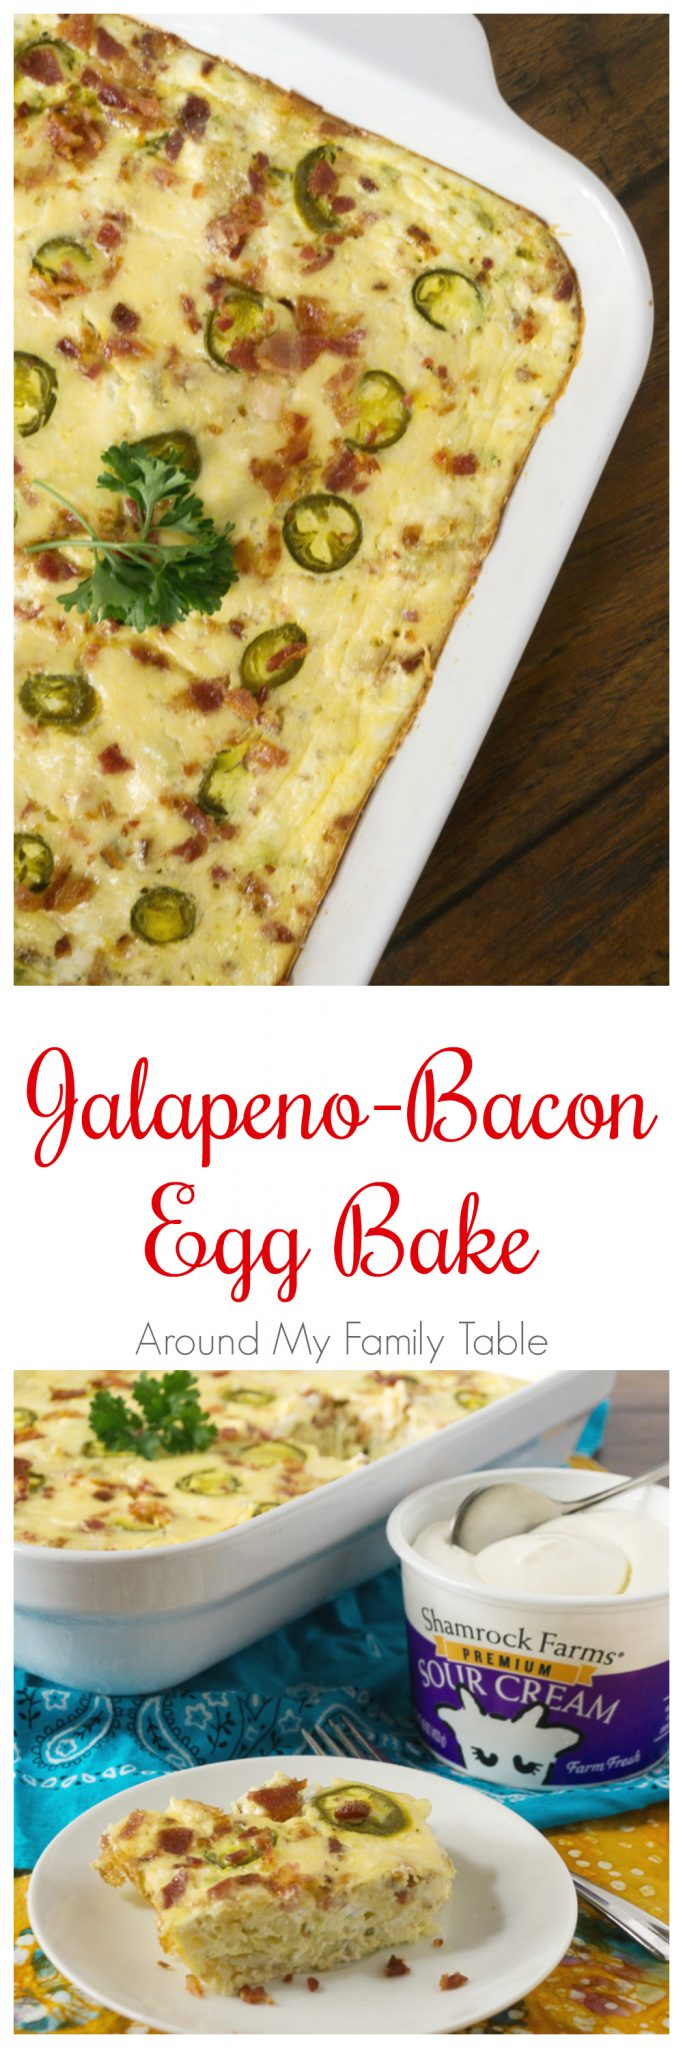 Rise and shine with this delicious Jalapeno Bacon Egg Bake. It's full of bacon, cheesy goodness and great for a late weekend breakfast and absolutely perfect for a potluck!